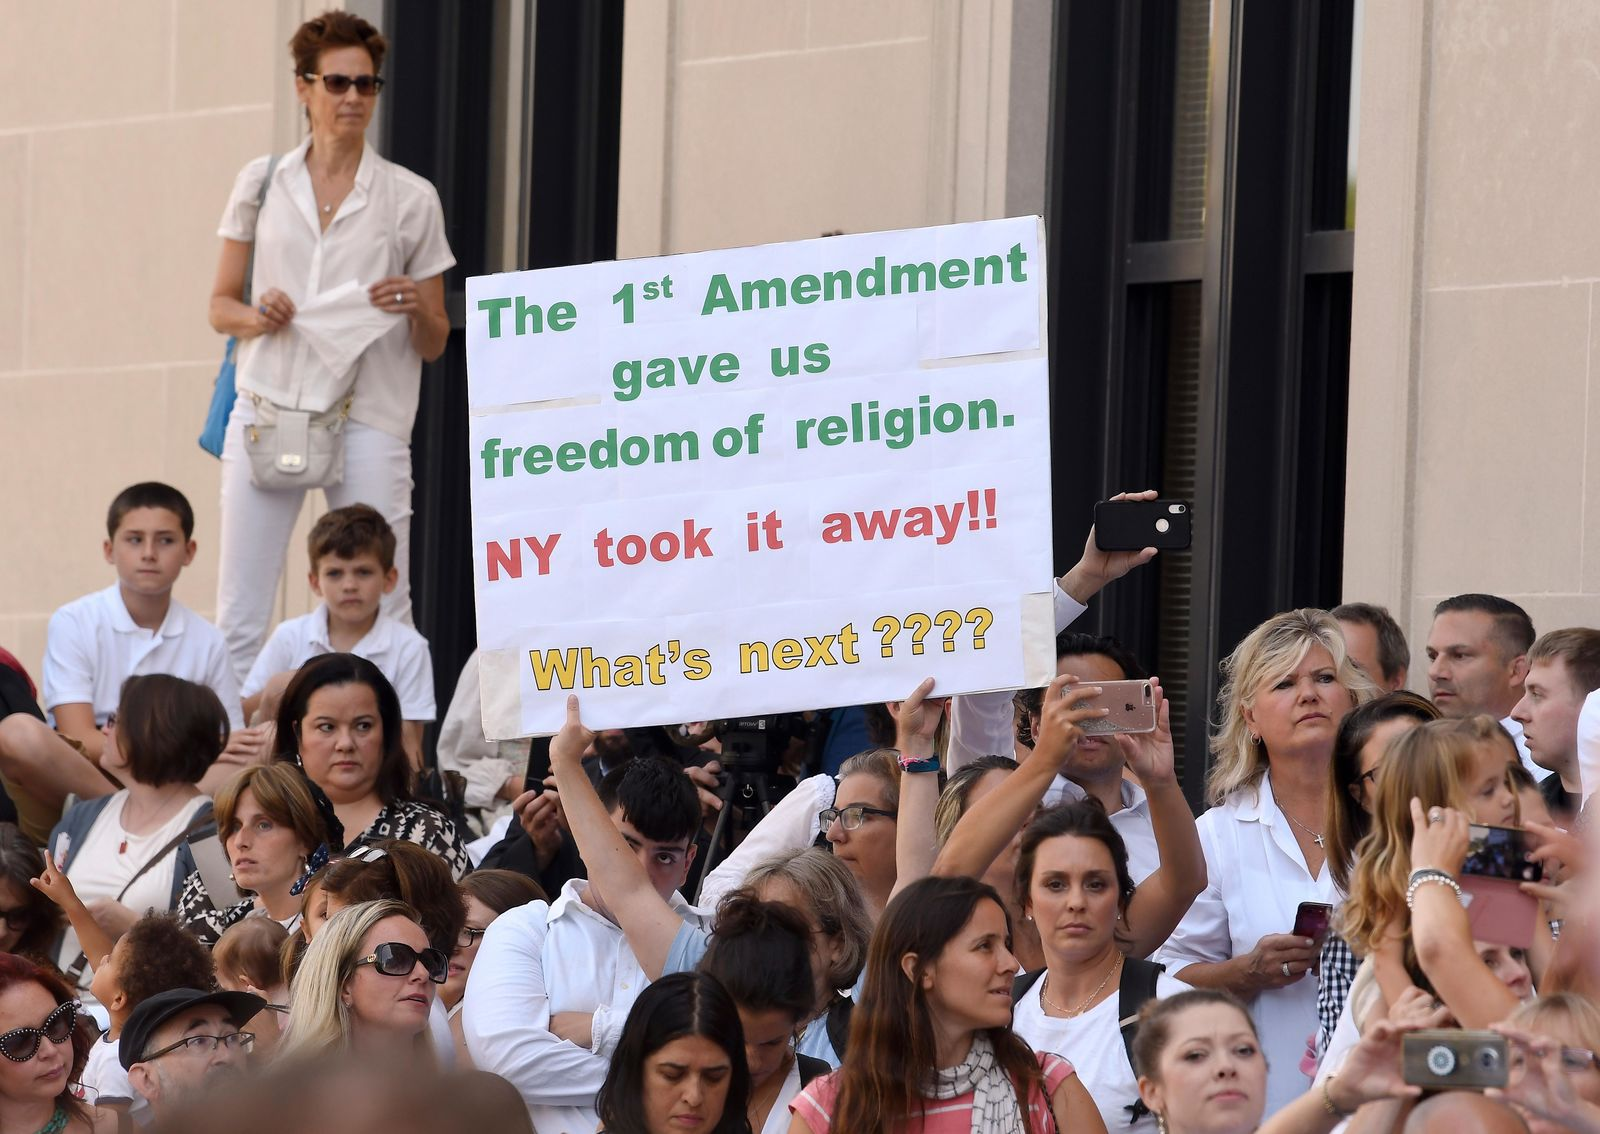 FILE - In this Aug. 14, 2019, file photo, people wait in line to hear attorneys speak at a hearing challenging the constitutionality of the state legislature's repeal of the religious exemption to vaccination outside the Albany County Courthouse in Albany, N.Y. (AP Photo/Hans Pennink, File)